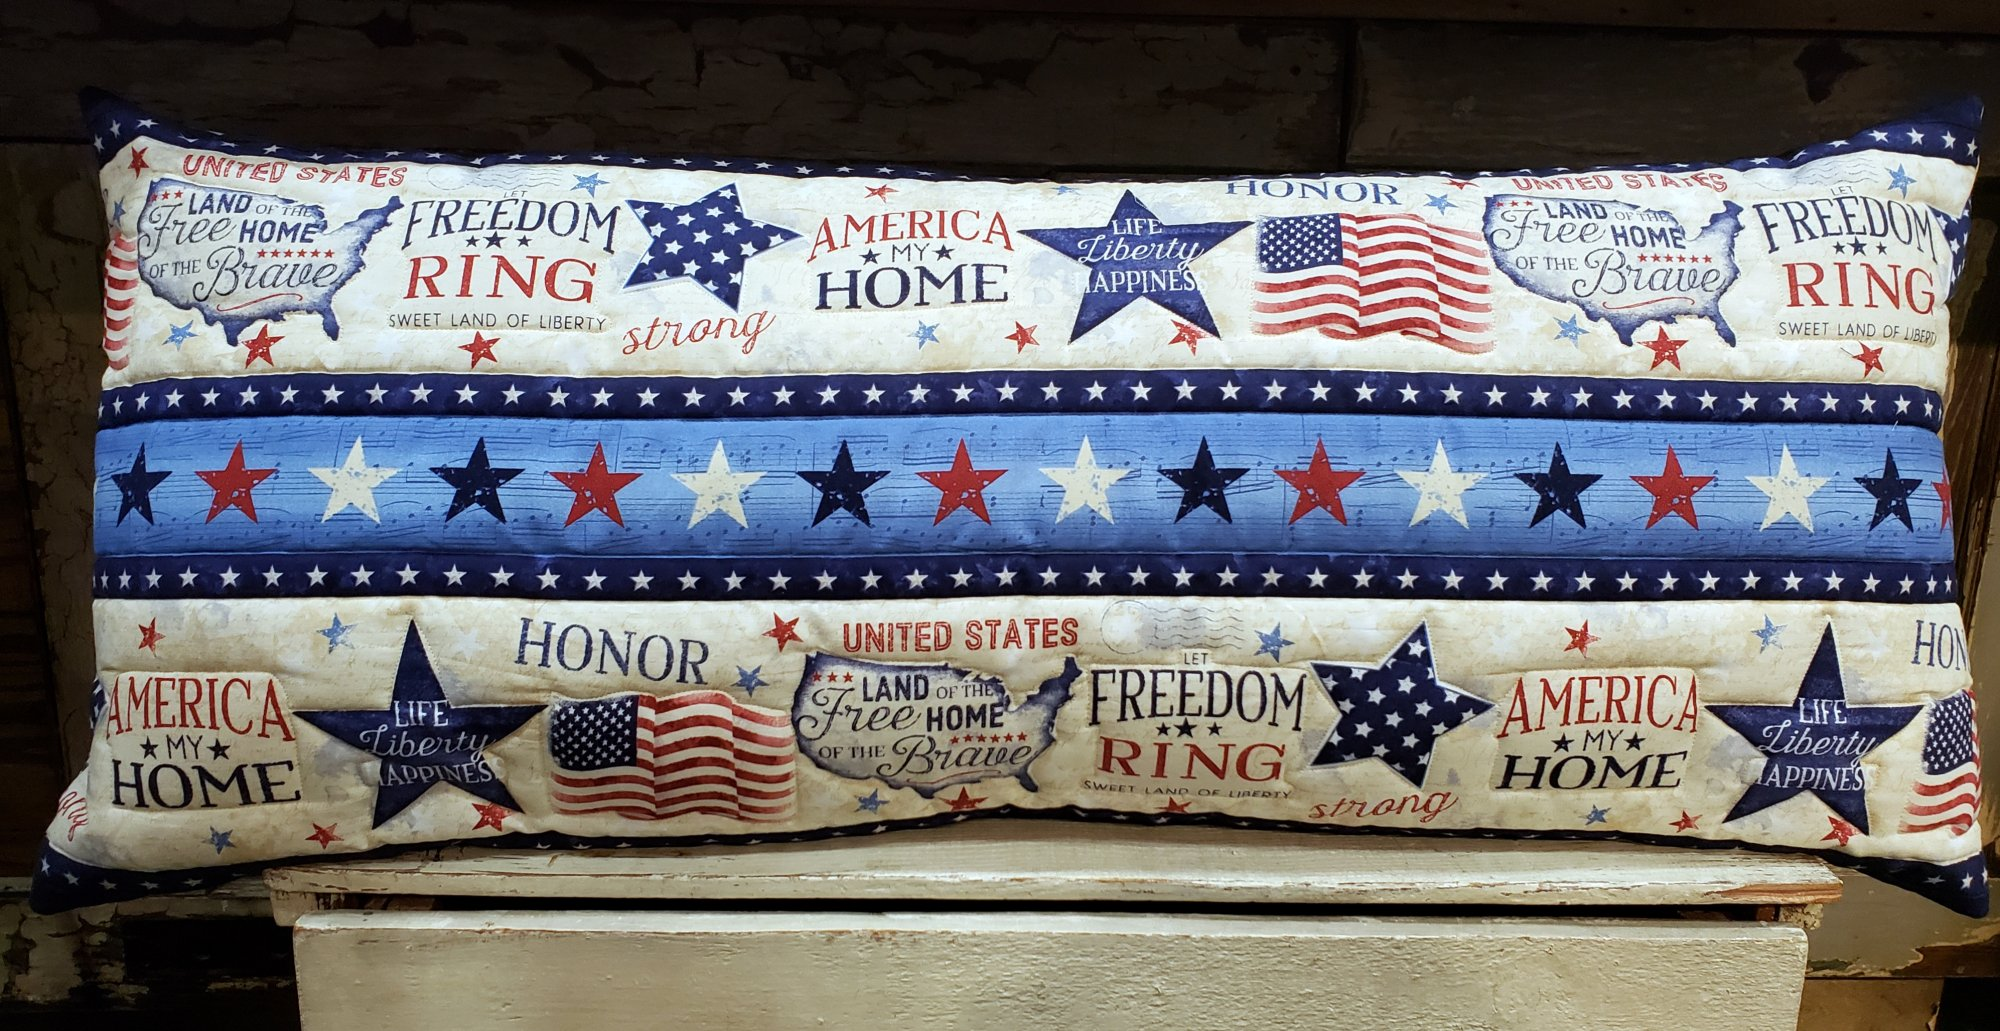 America, My Home Bench Pillow Kit